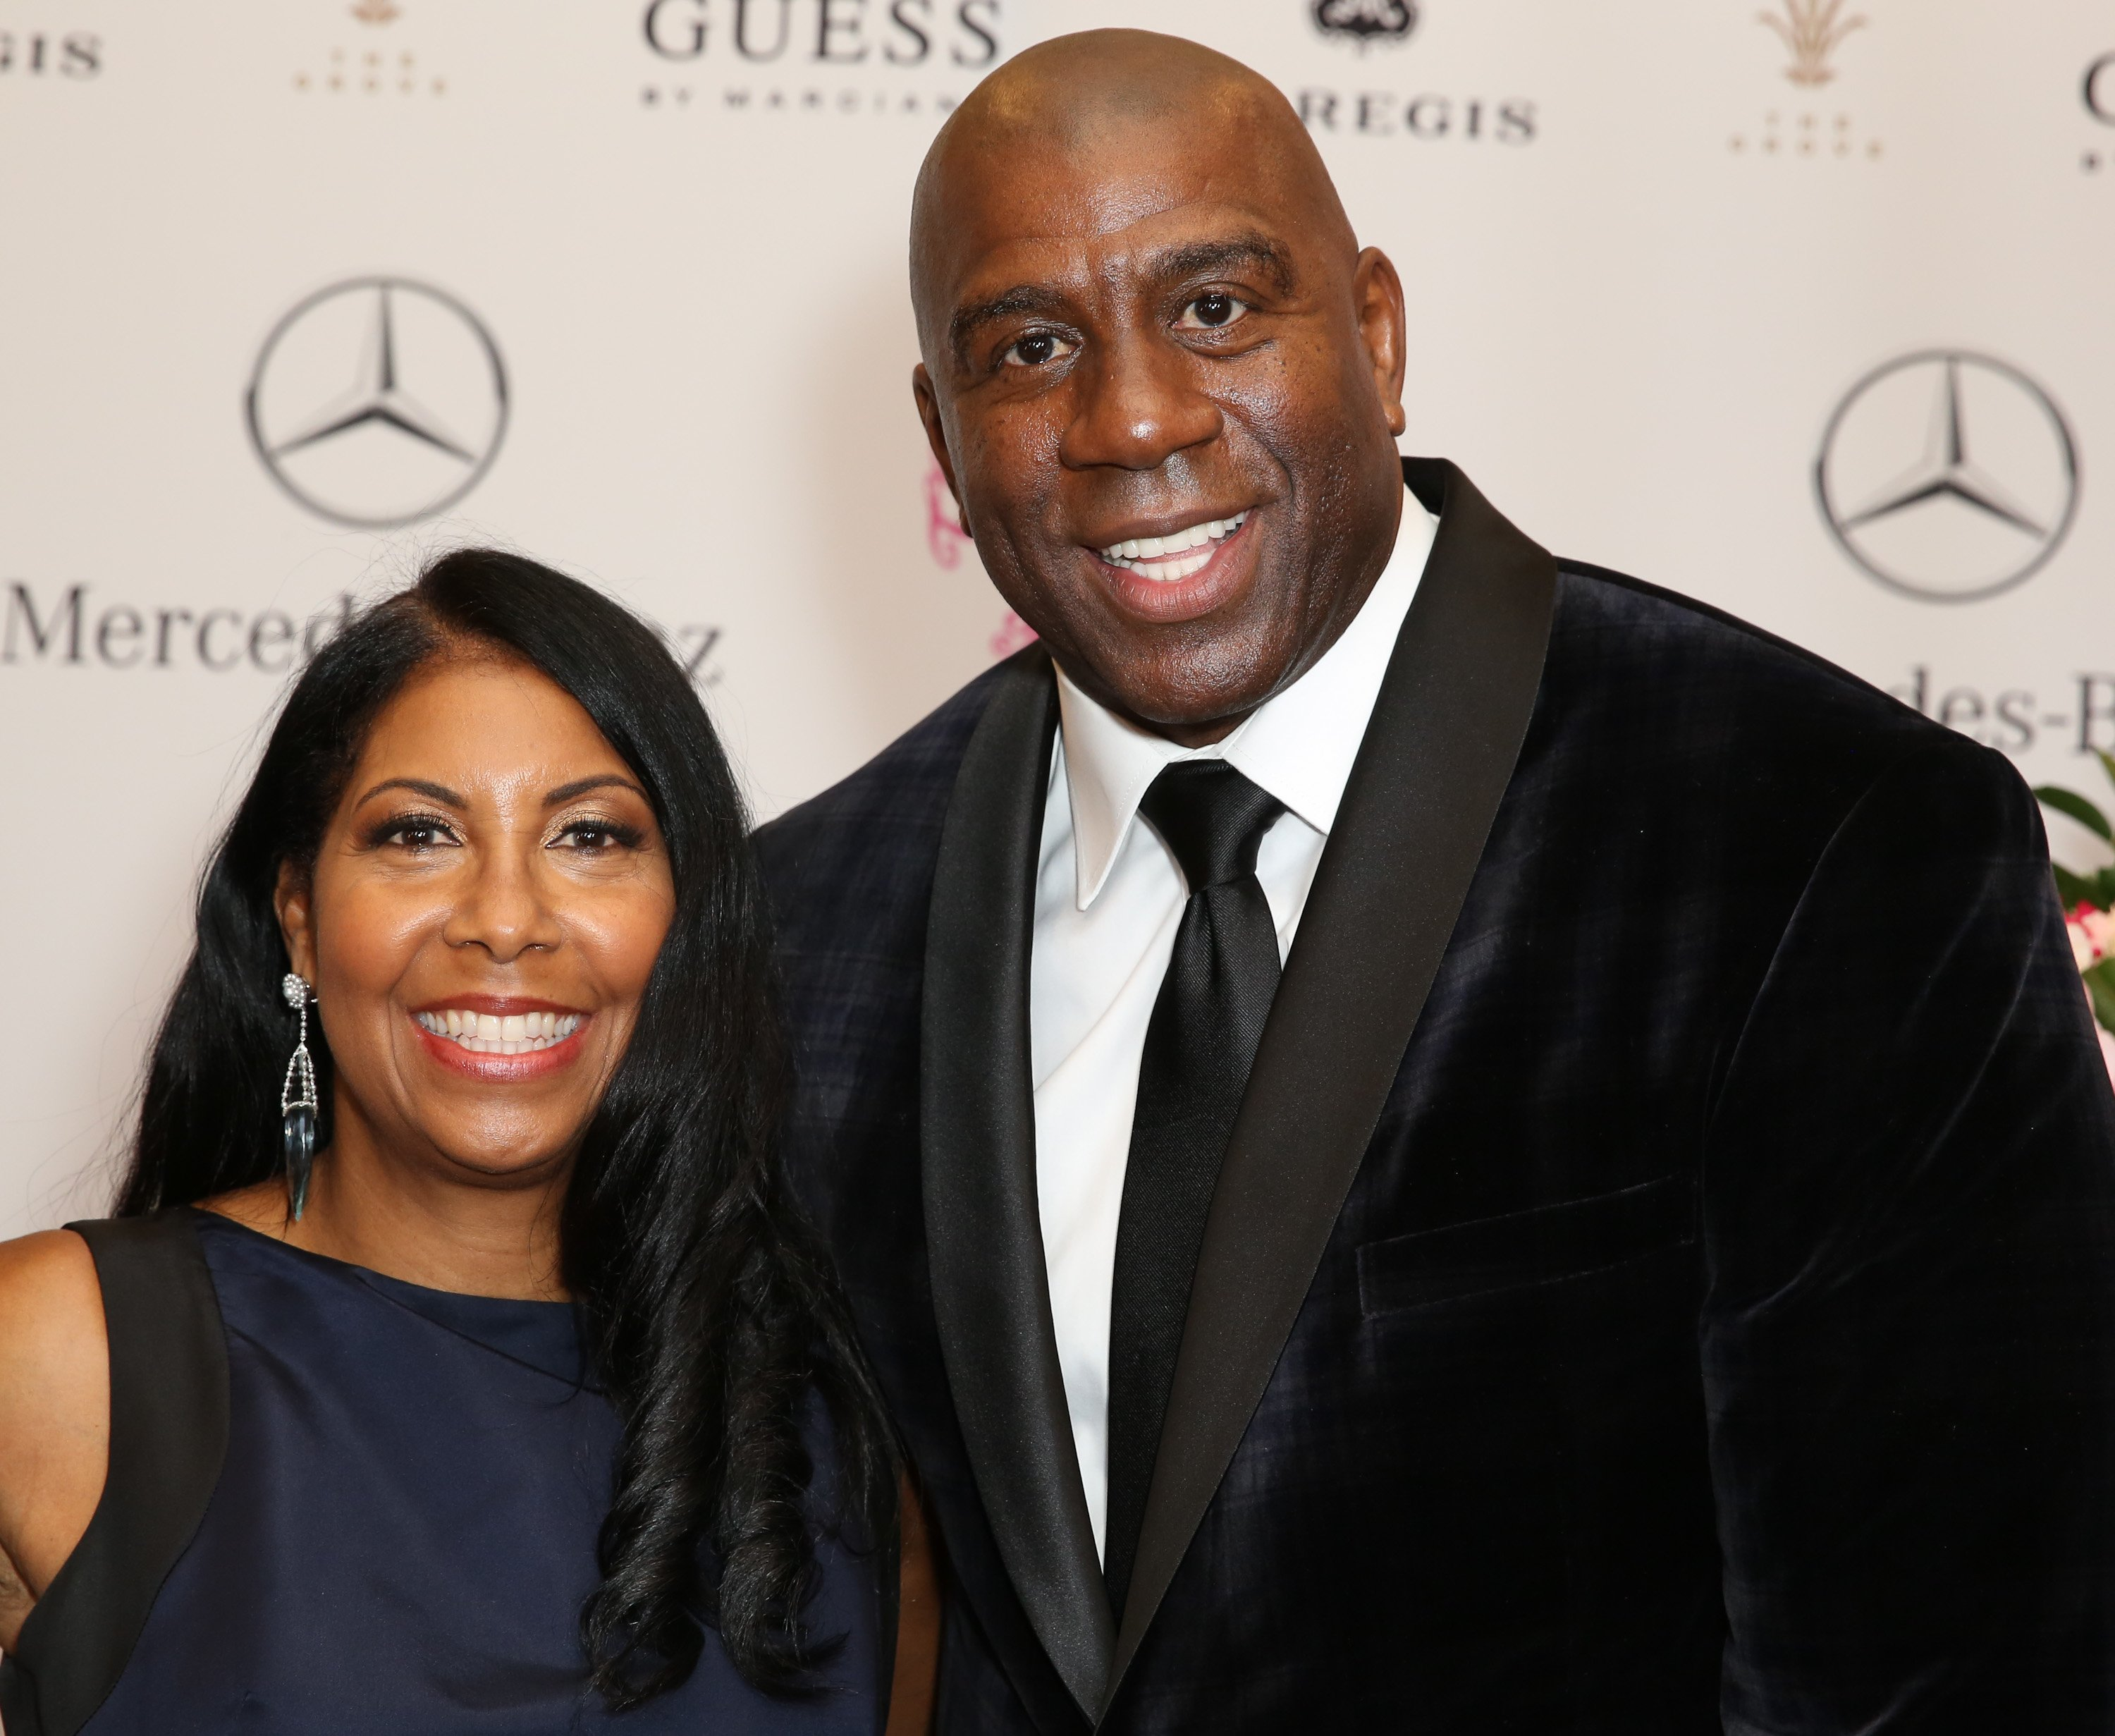 Cookie and Earvin 'Magic' Johnson pictured at the Carousel of Hope Ball on October 11, 2014 in Beverly Hills, California. | Source: Getty Images